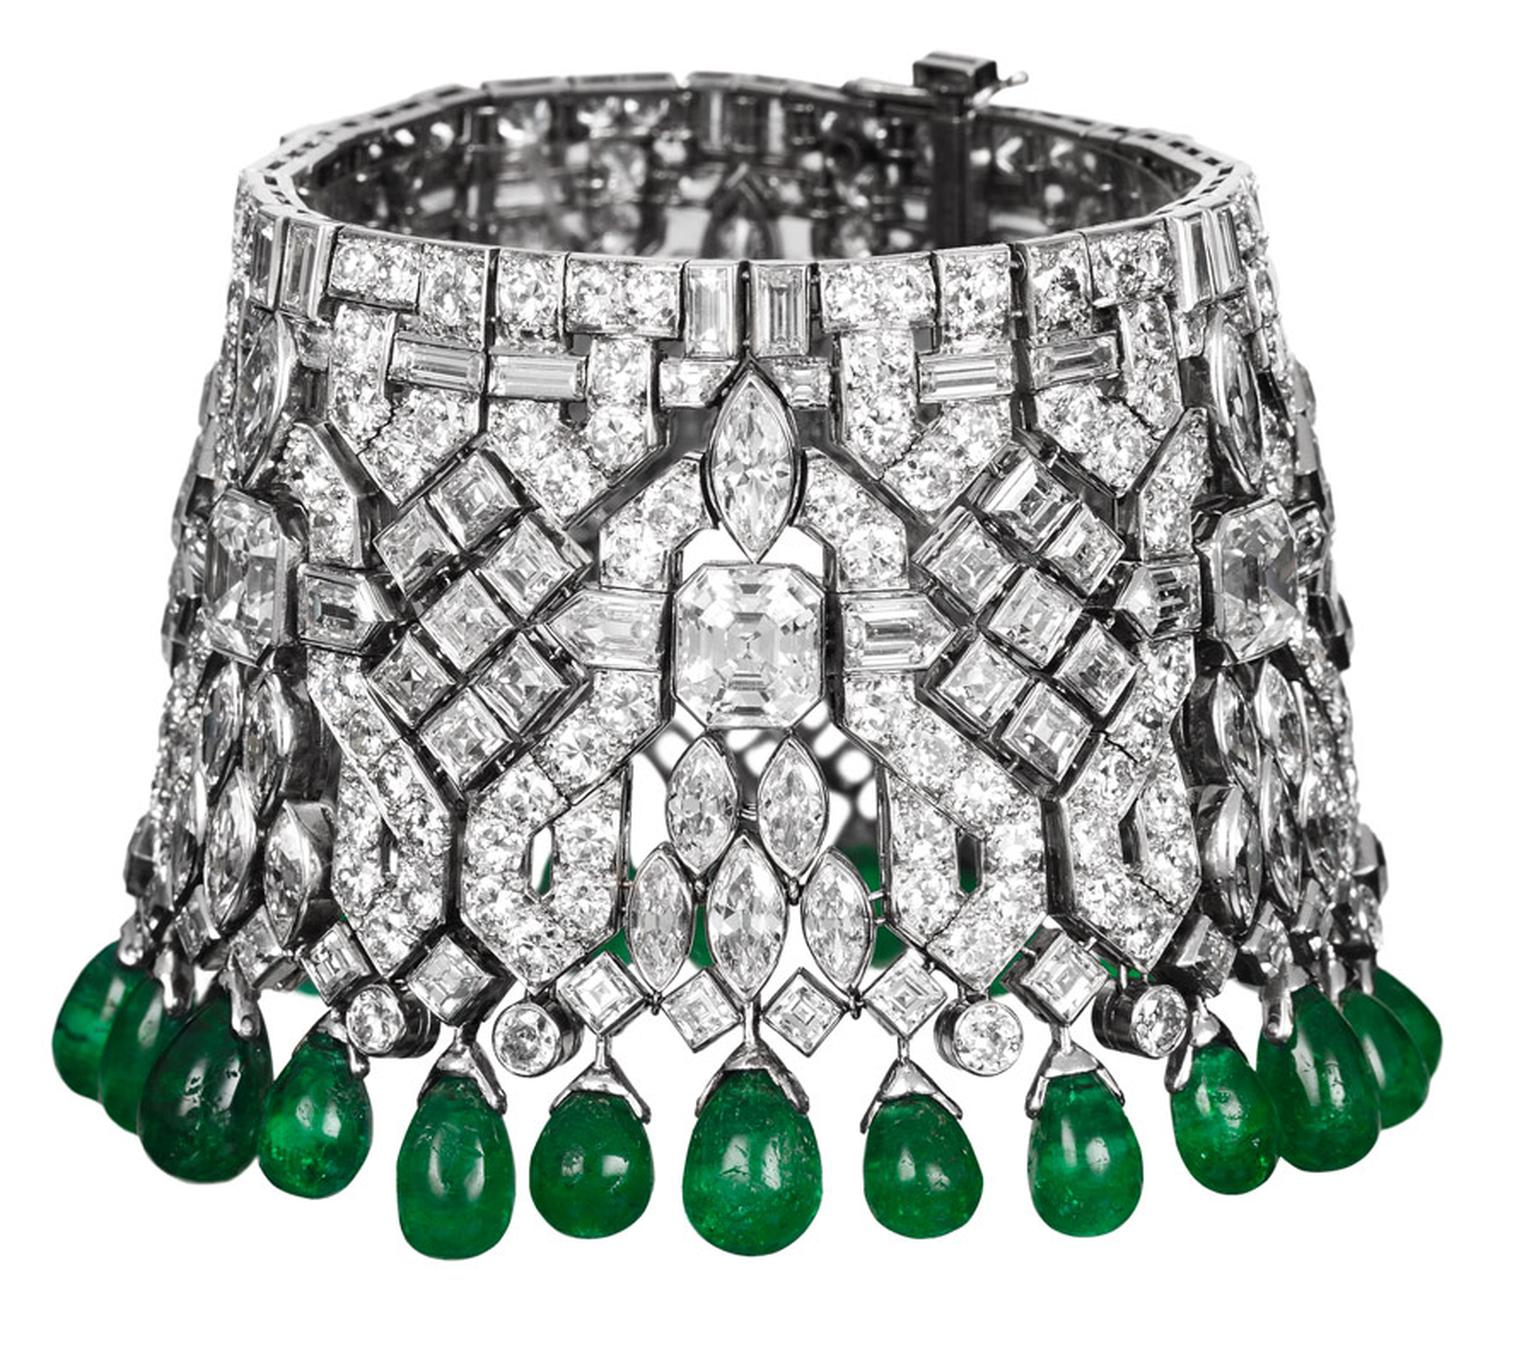 Van-Cleef-Arpels-Indian-bracelets-transformable-into-a-choker-ordered-by-Daisy-Fellowes-1928-Private-Collection_2